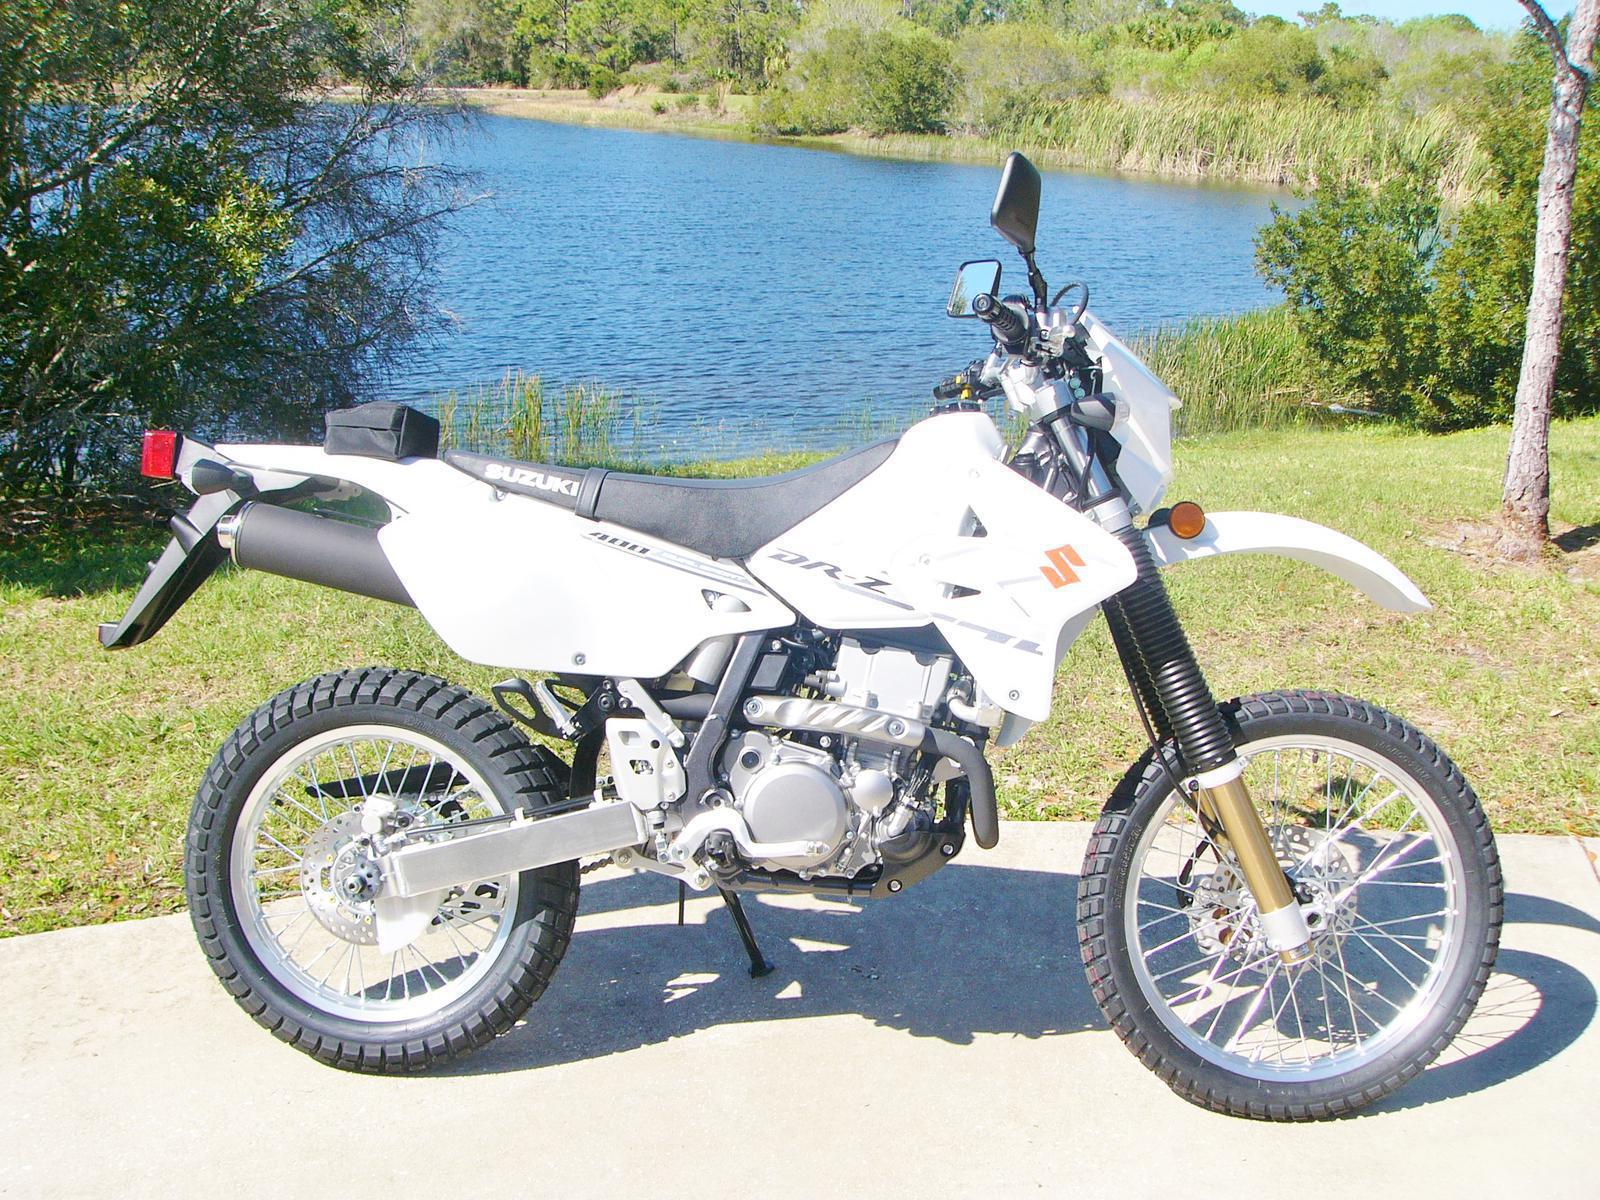 2018 Suzuki DR-Z 400S for sale in Nokomis, FL | Sarasota Fun